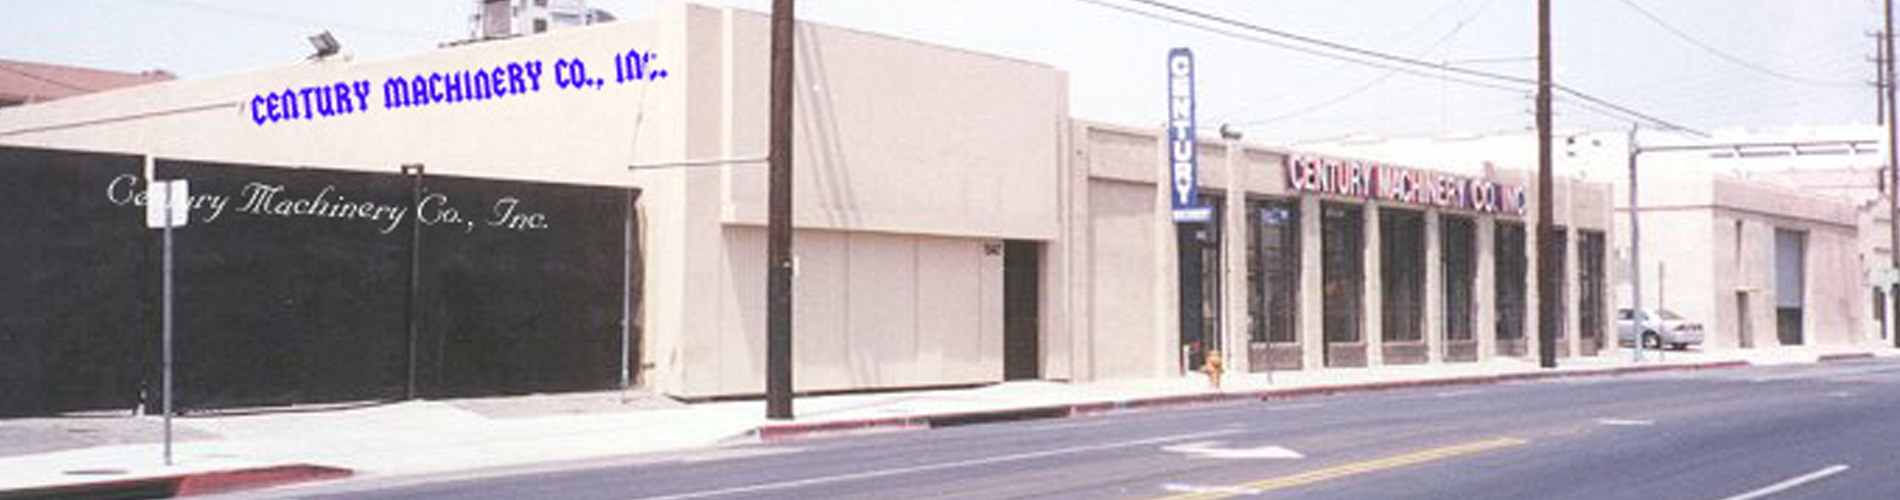 Current warehouse location in Los Angeles, Ca.